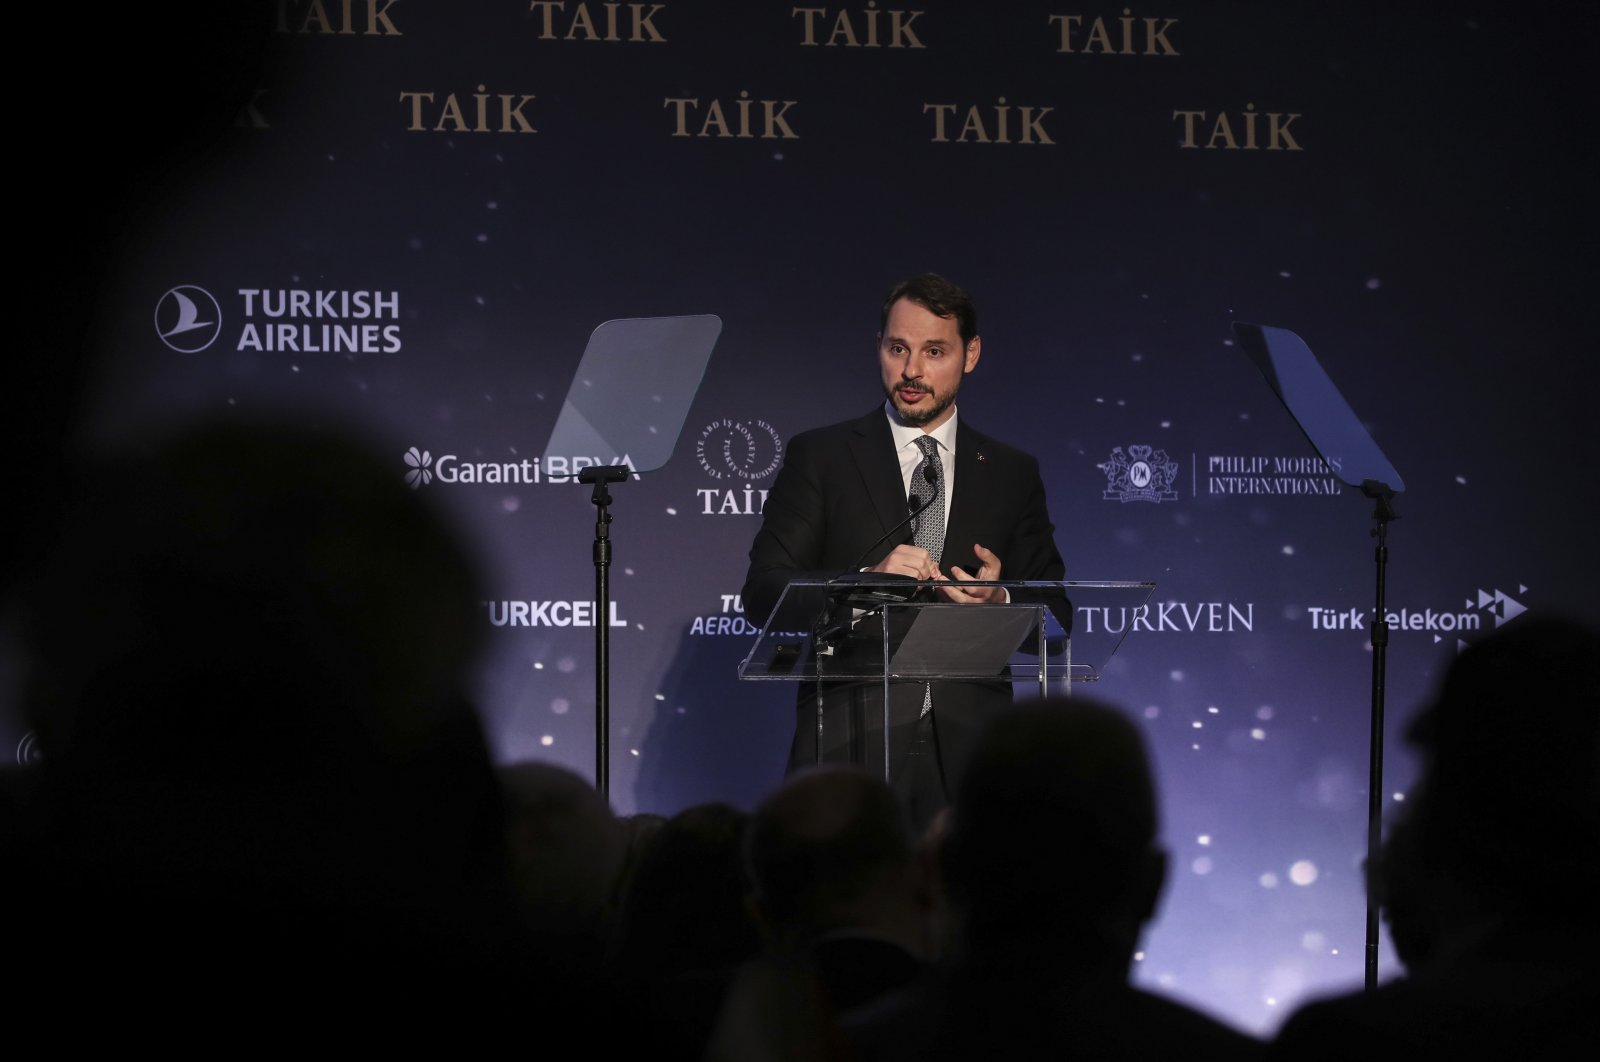 Turkey's Treasury and Finance Minister Berat Albayrak speaks at the 10th Turkey investment conference organized by Turkey's Foreign Economic Relations Board (DEİK) Turkey-US Business Council (TAİK) in New York, the U.S., Sept. 26, 2019. (AA Photo)